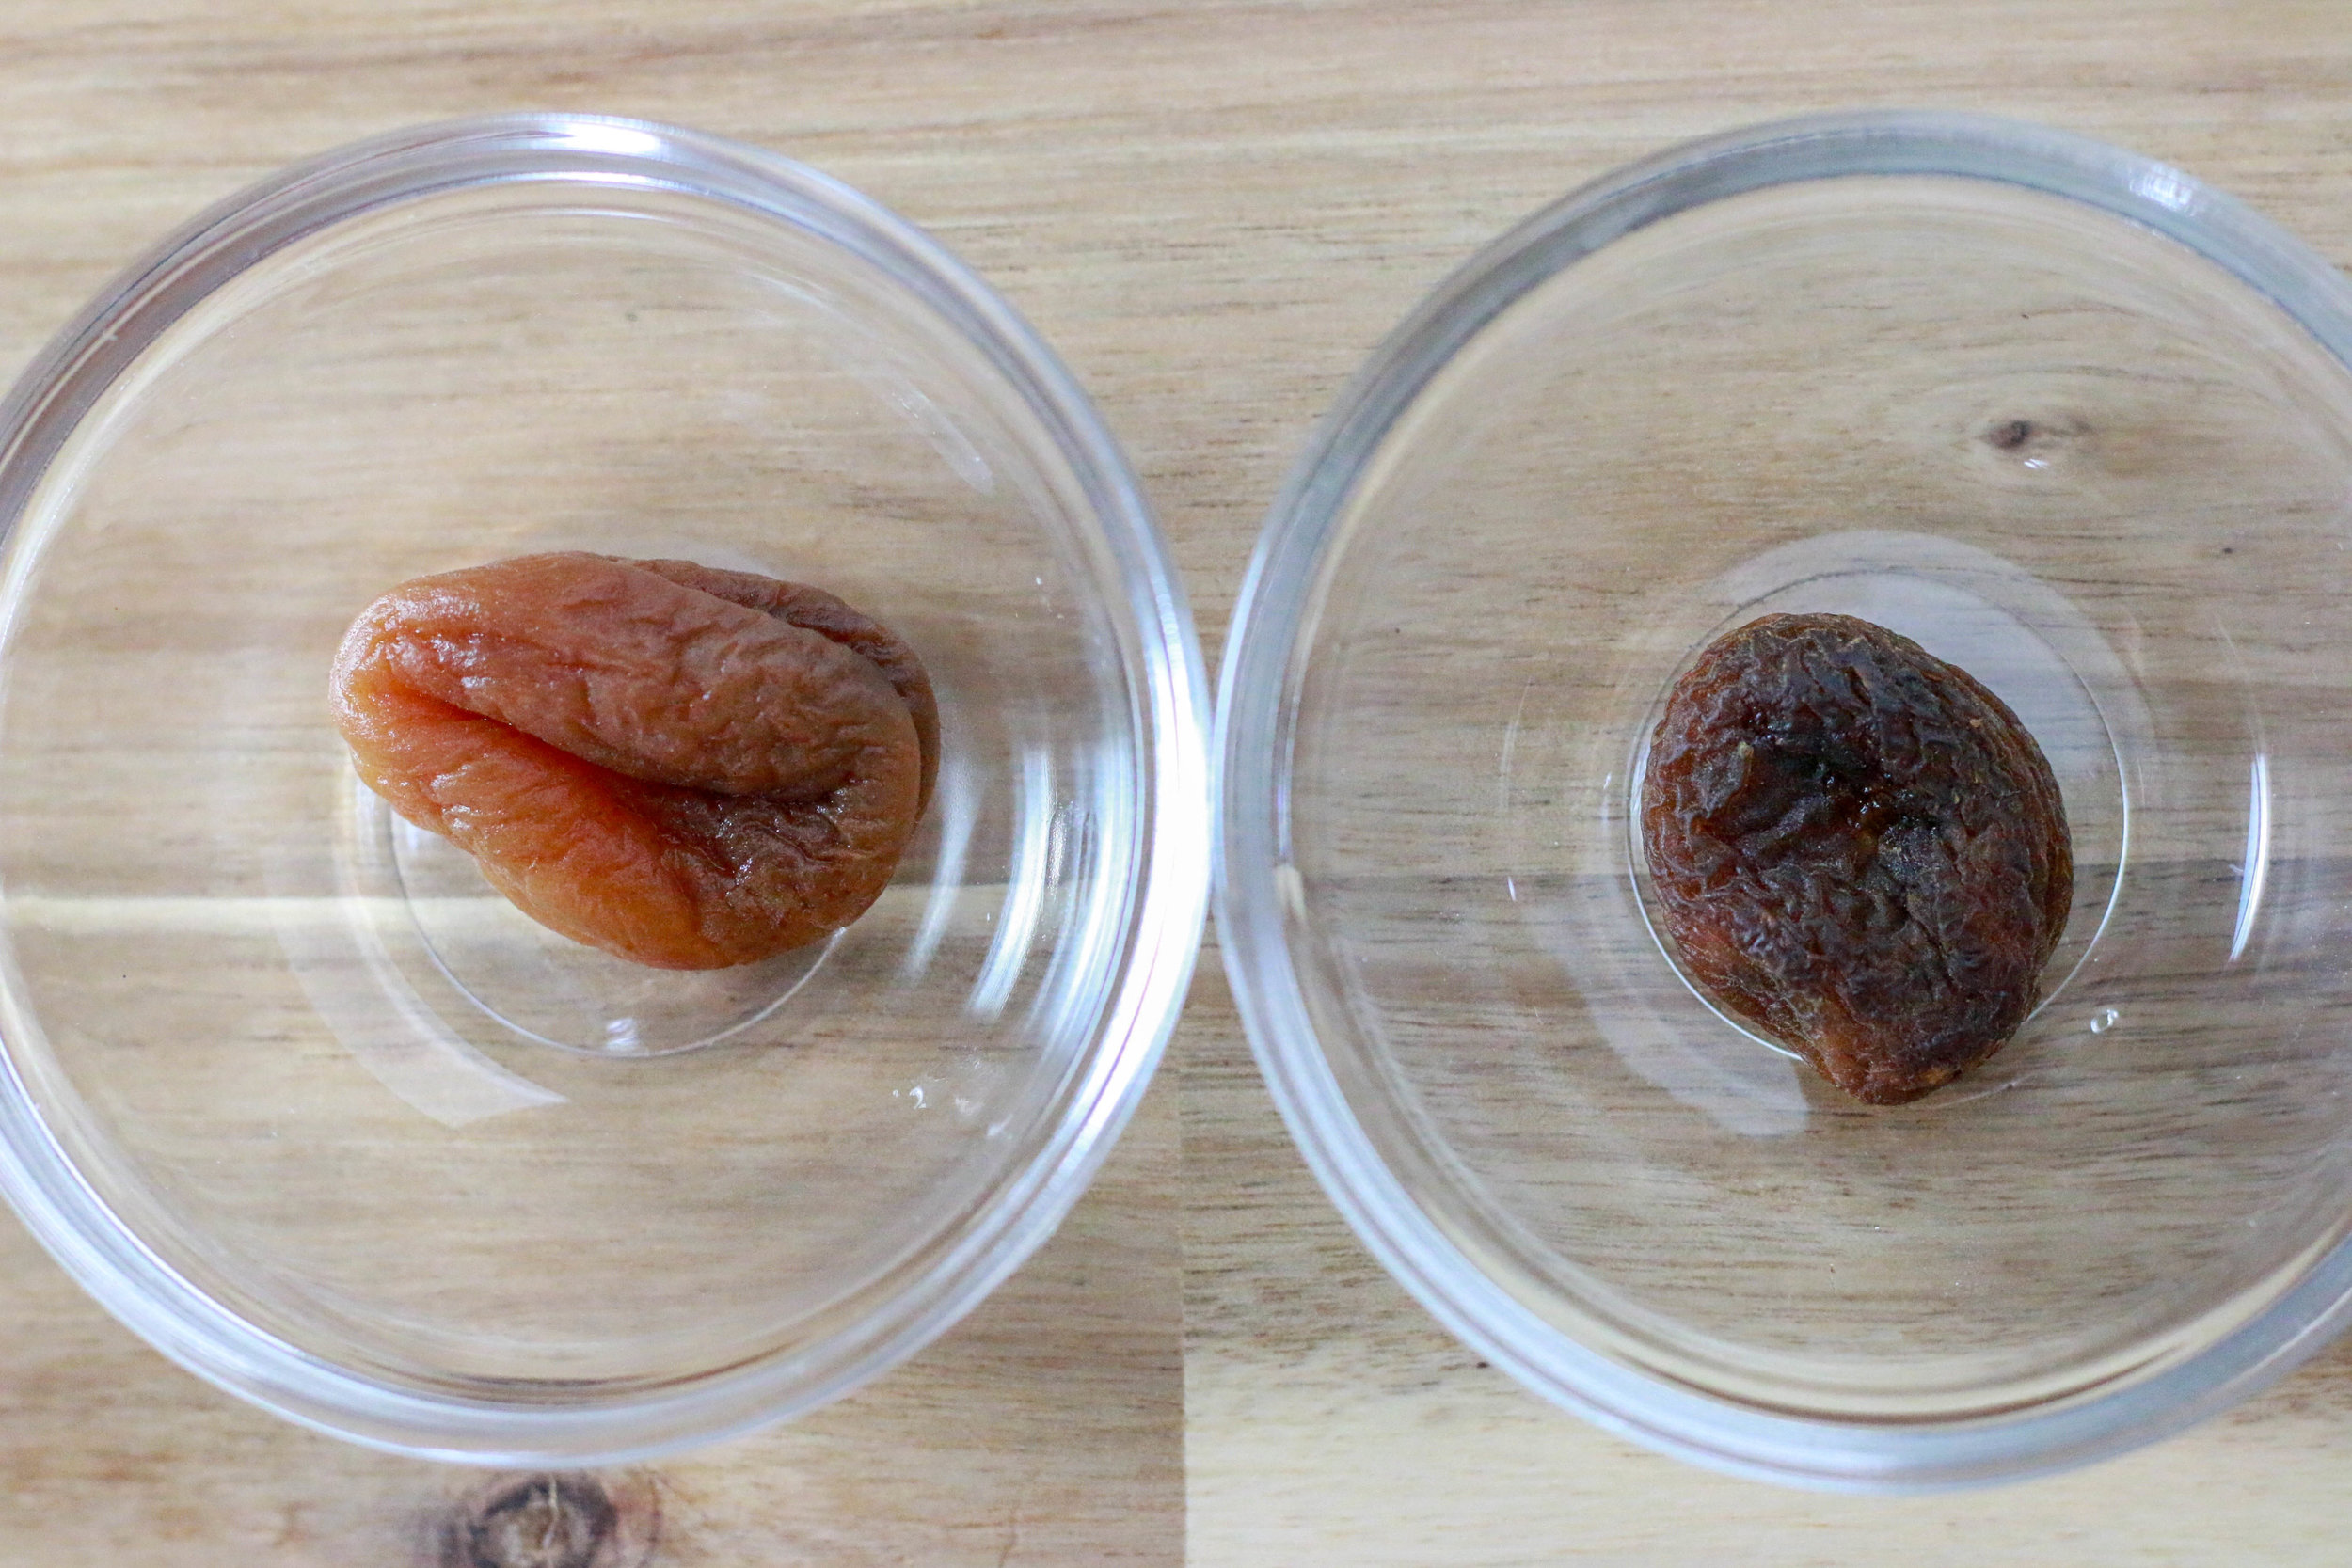 Before and after soaking! See how plump that apricot on the left looks?!